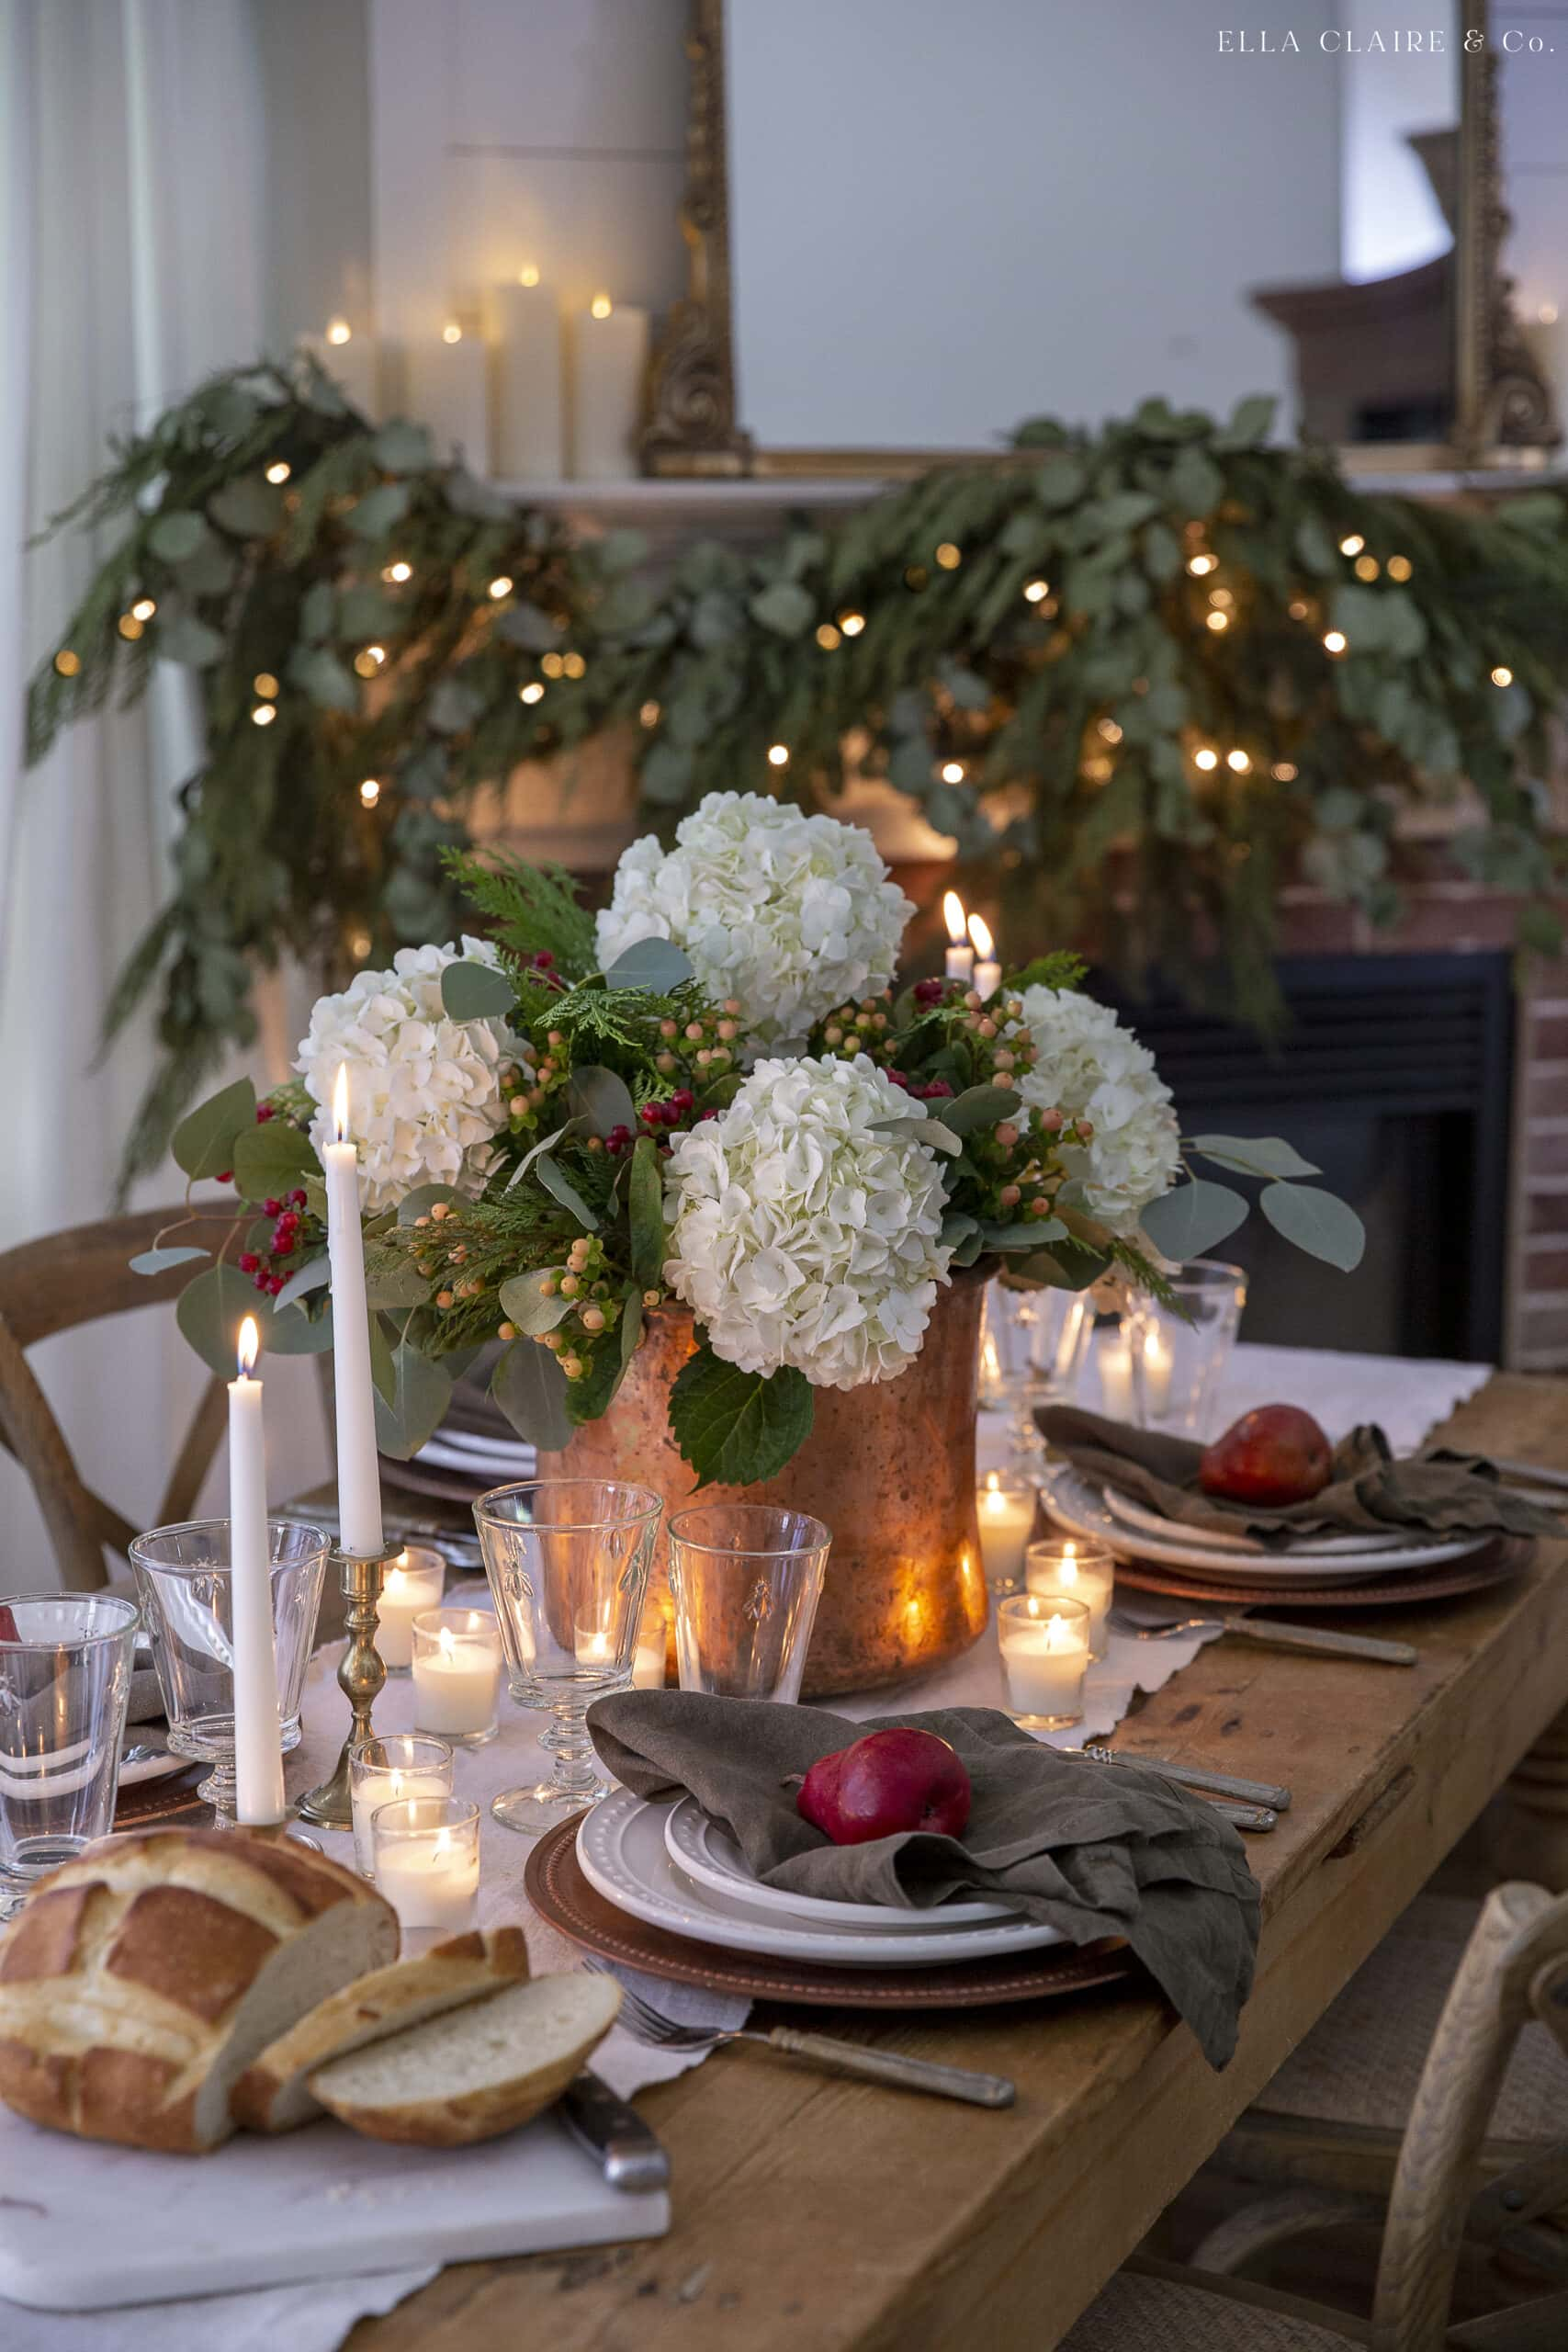 holiday flower arrangement with hydrangeas and berries